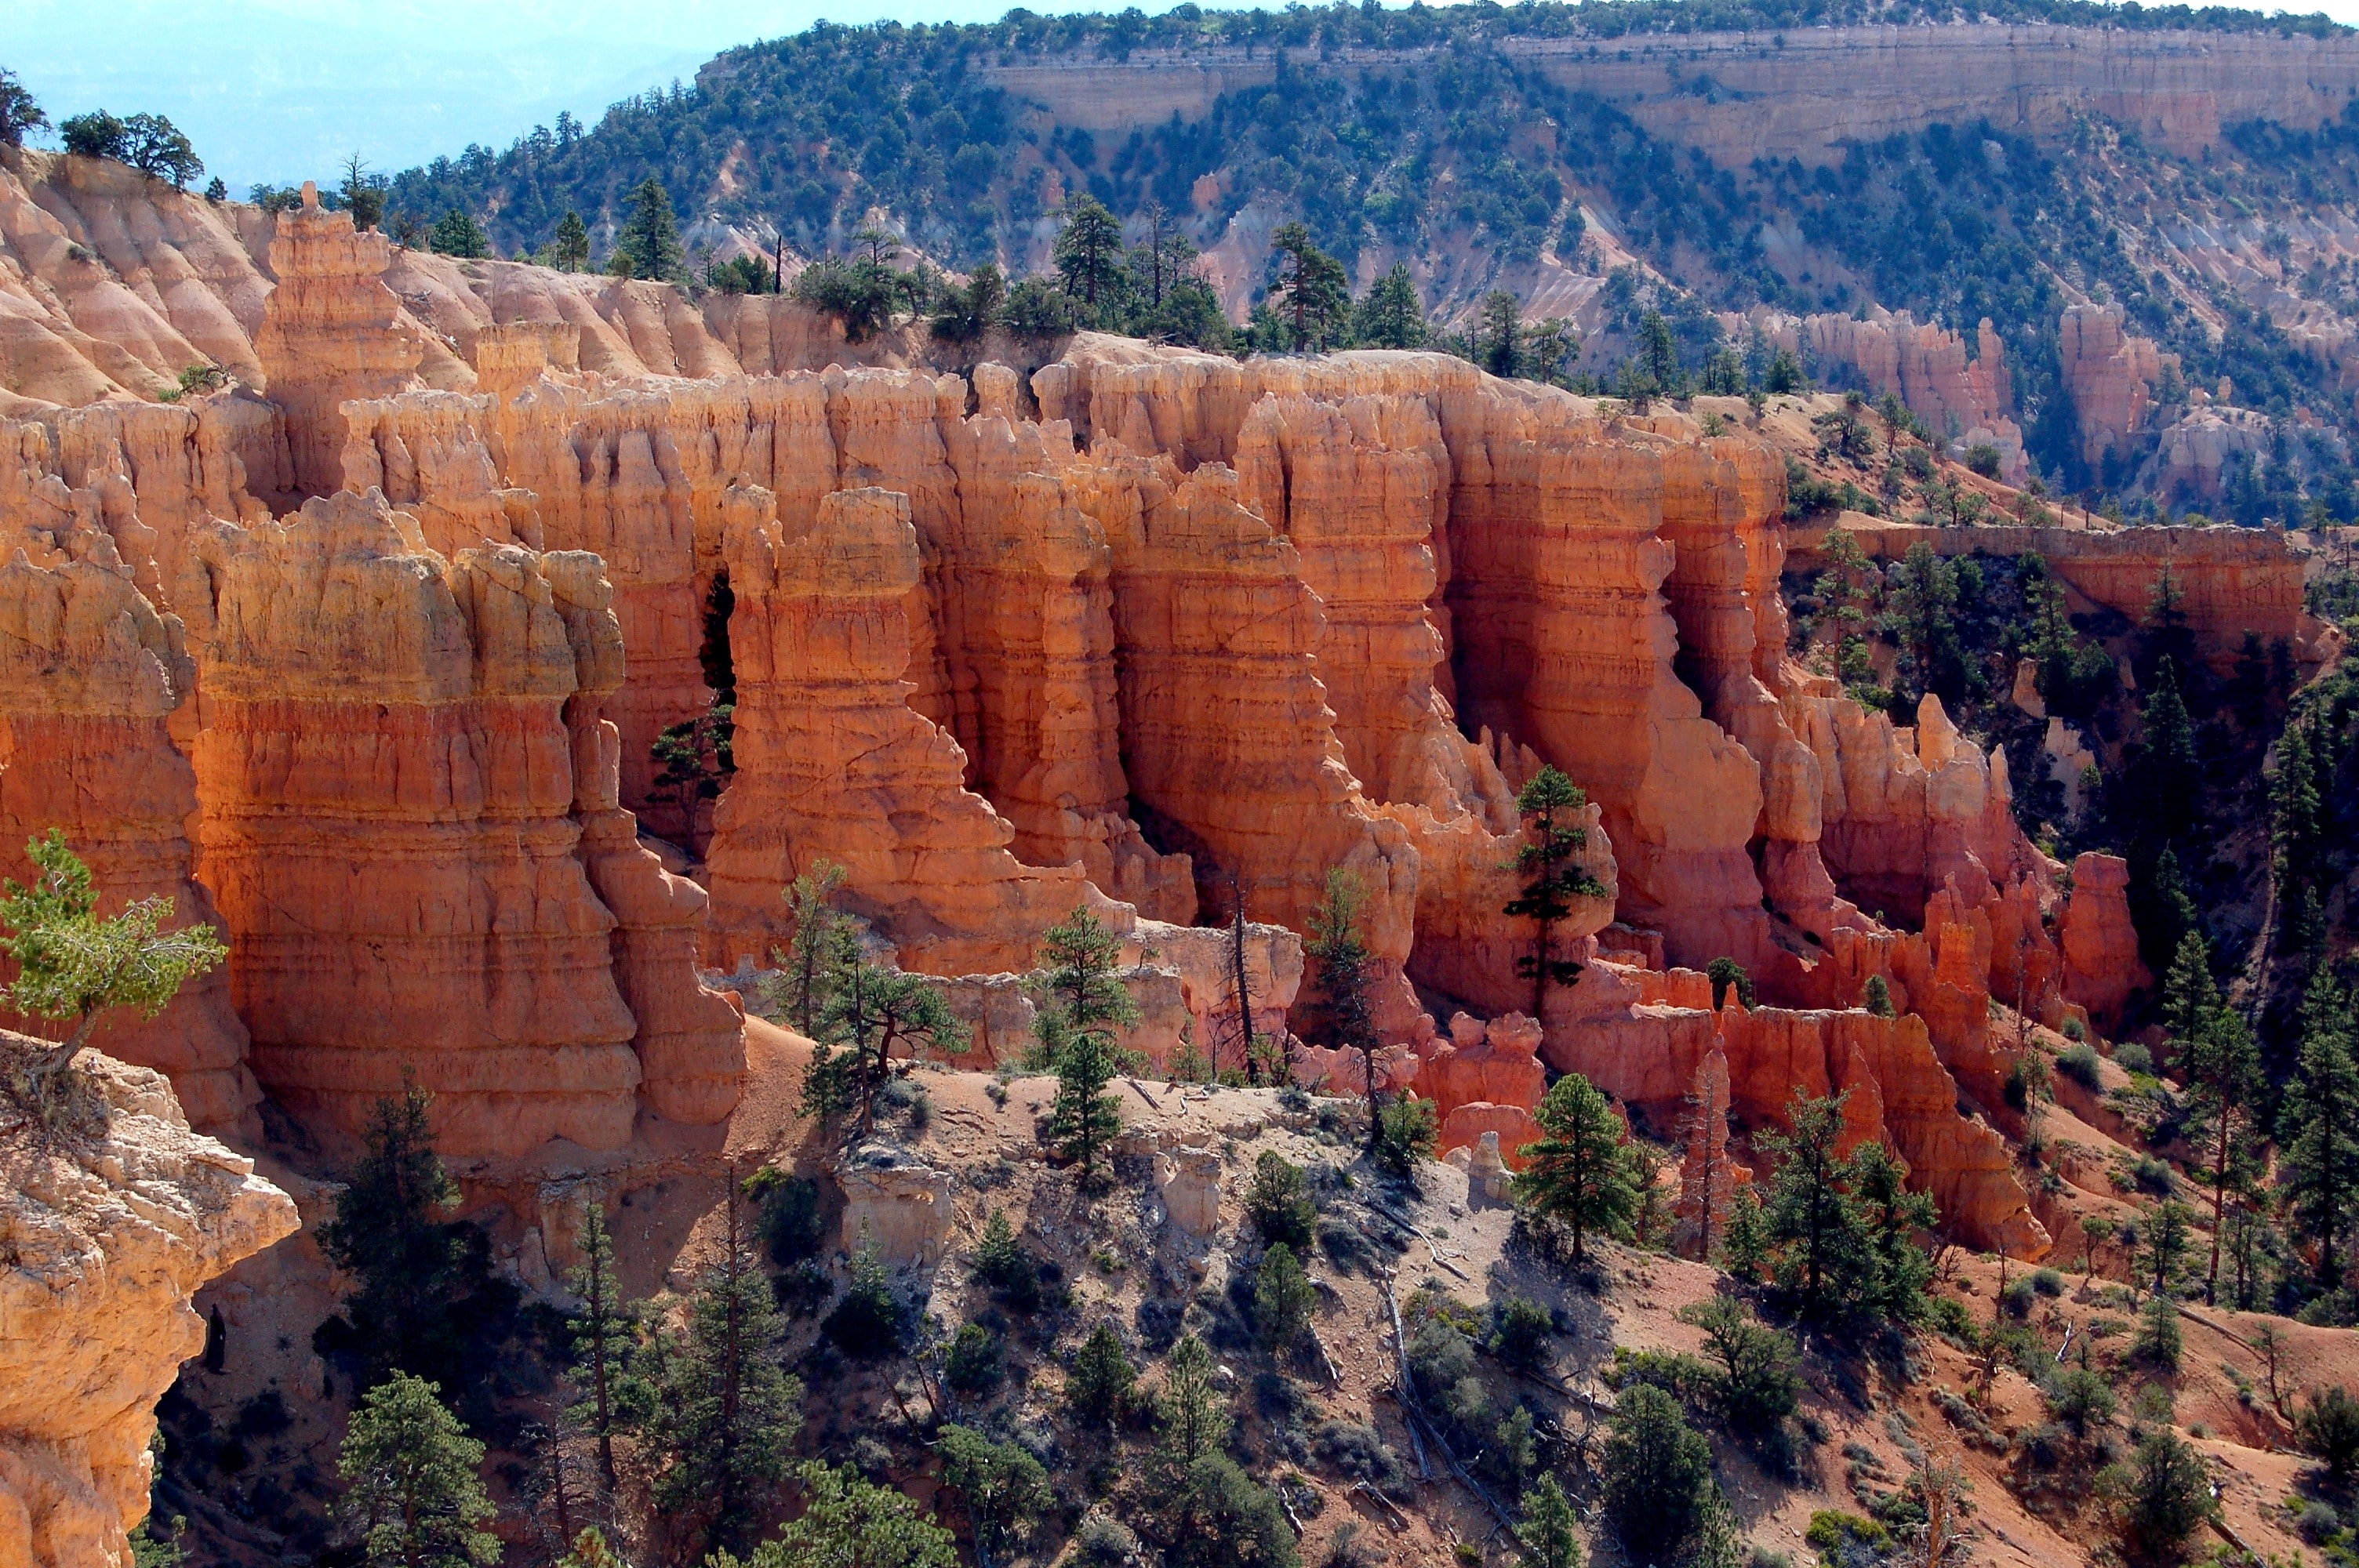 rock formations near green leafed trees